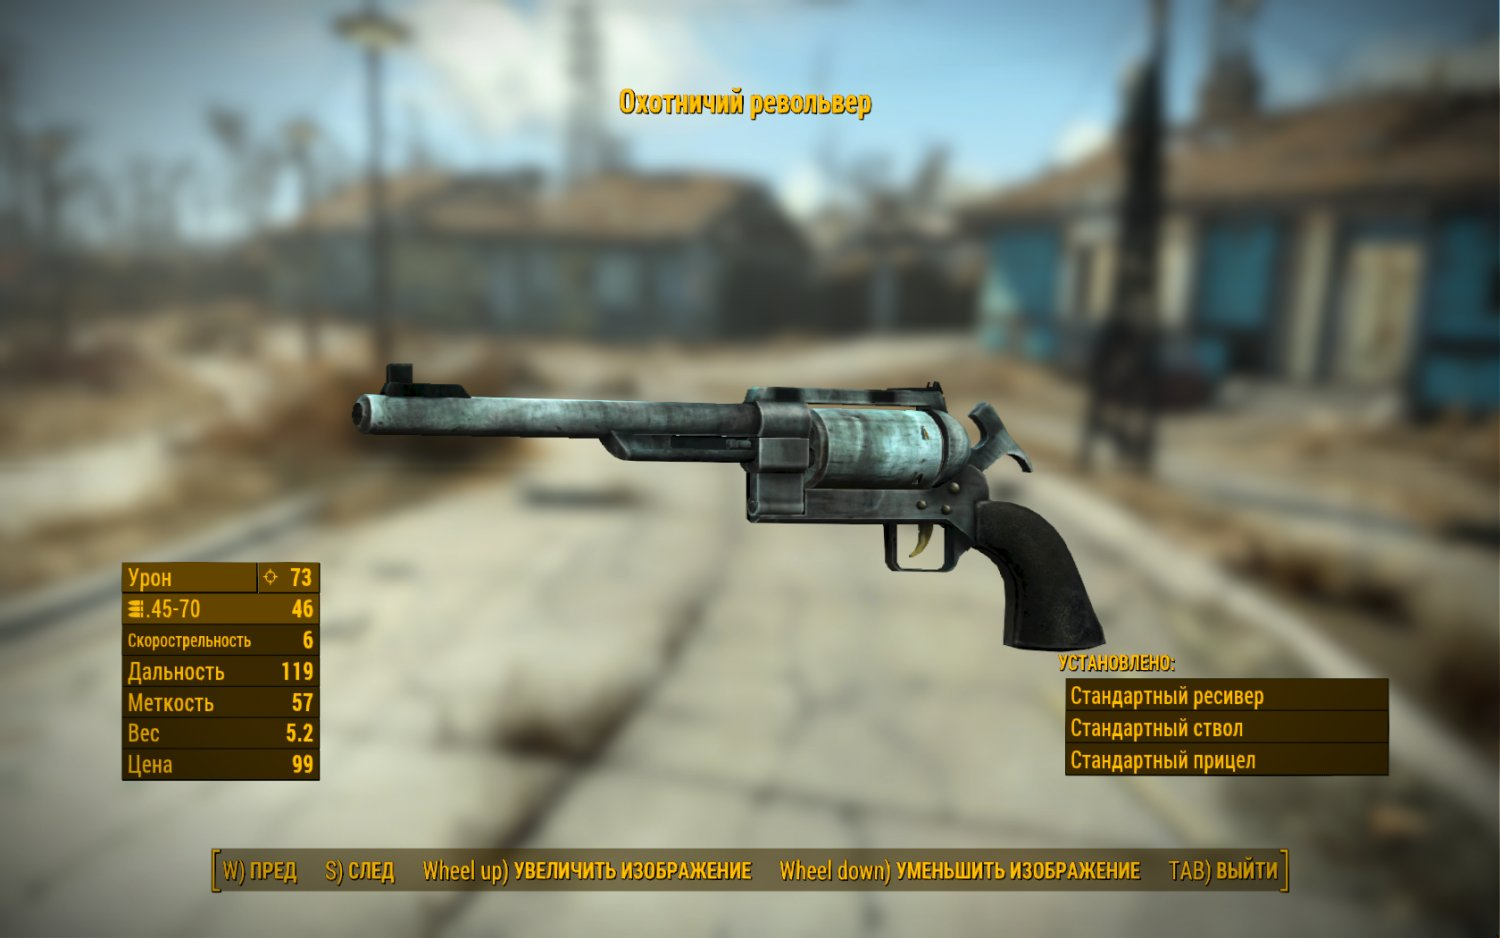 Image 4 - New Vegas Weapons (Fallout 4 Edition) mod for ...